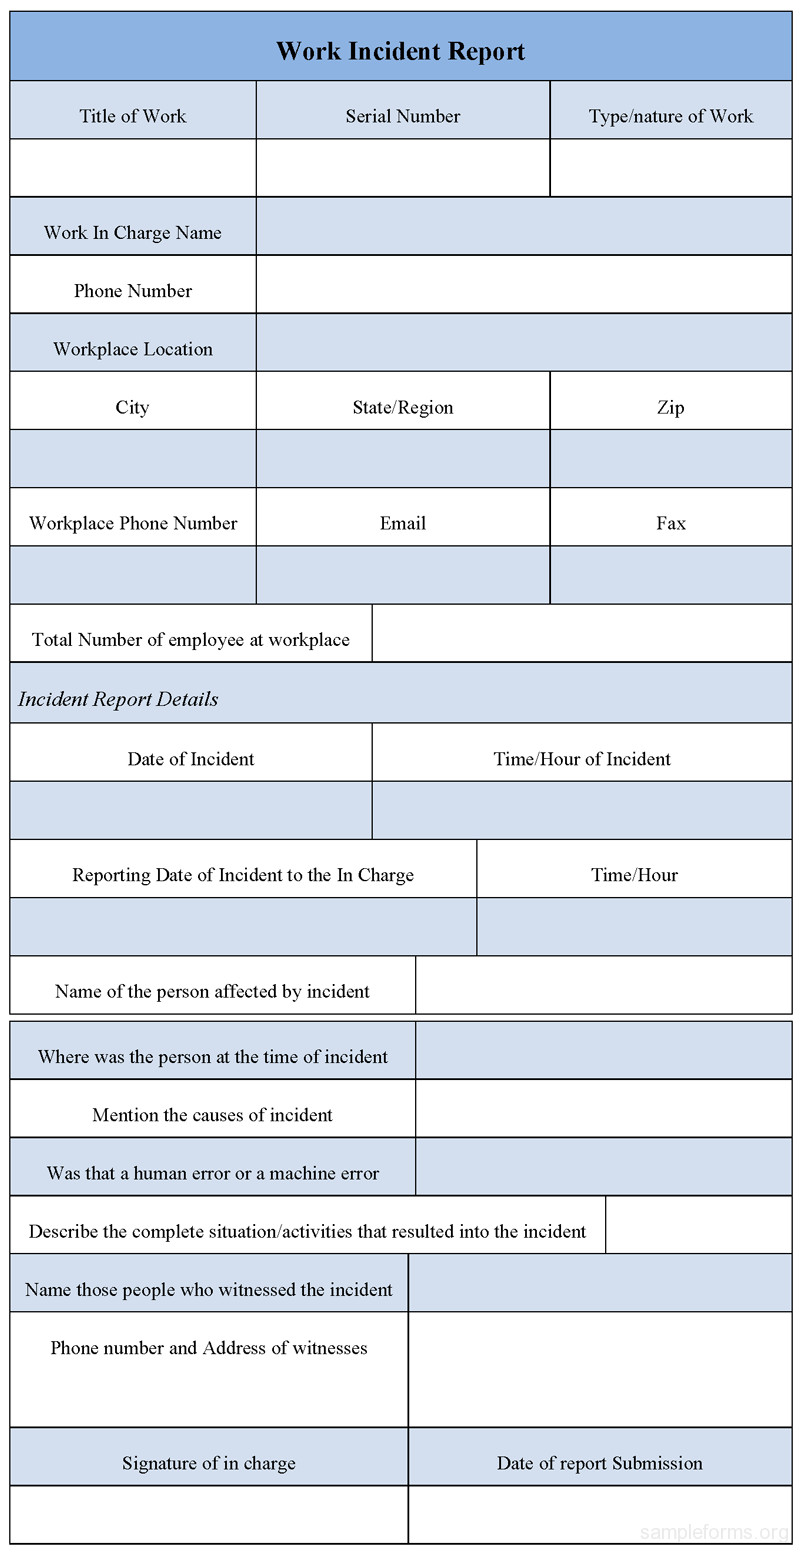 Work Incident Report Template Best S Of Work Incident Report form Workplace